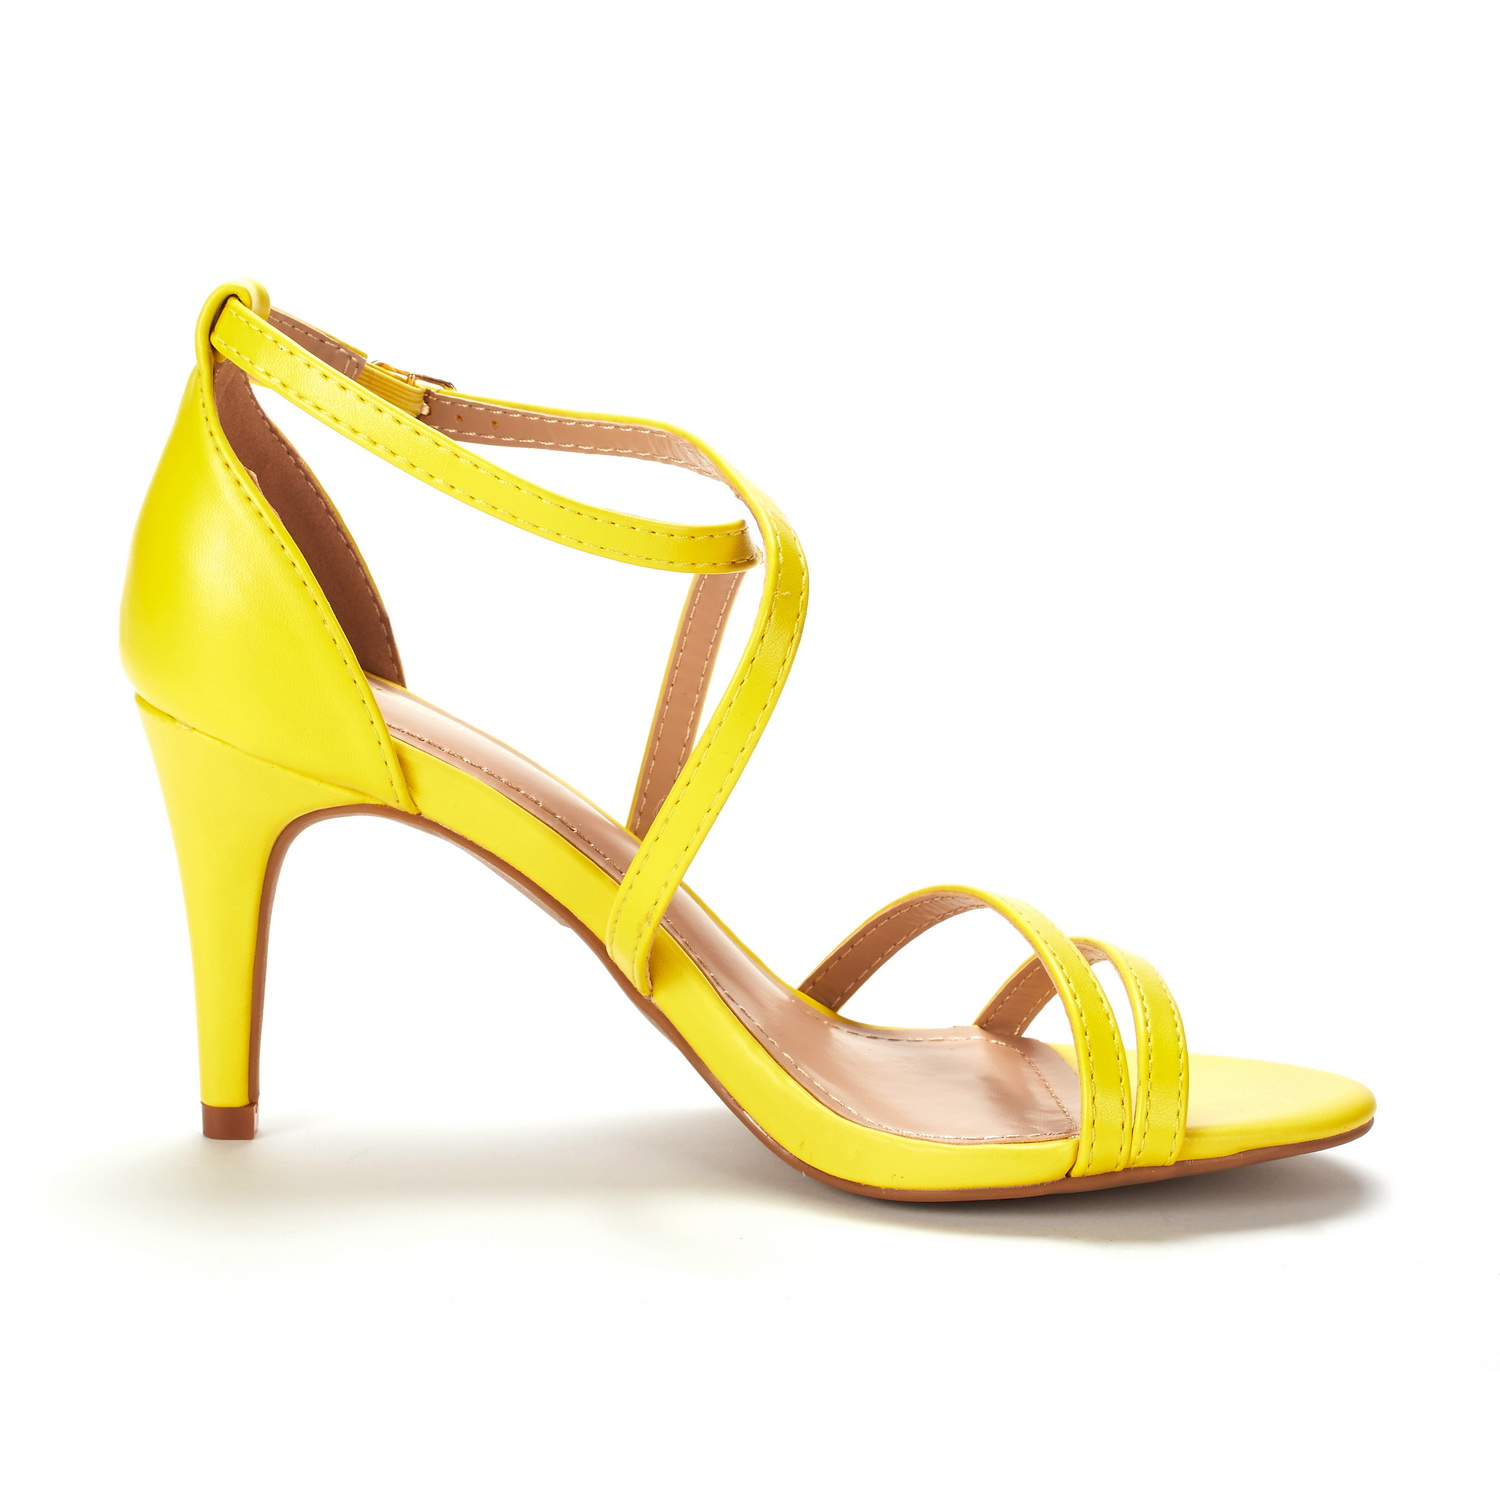 DREAM-PAIRS-Women-039-s-Ankle-Strap-High-Heel-Sandals-Dress-Shoes-Wedding-Party thumbnail 4